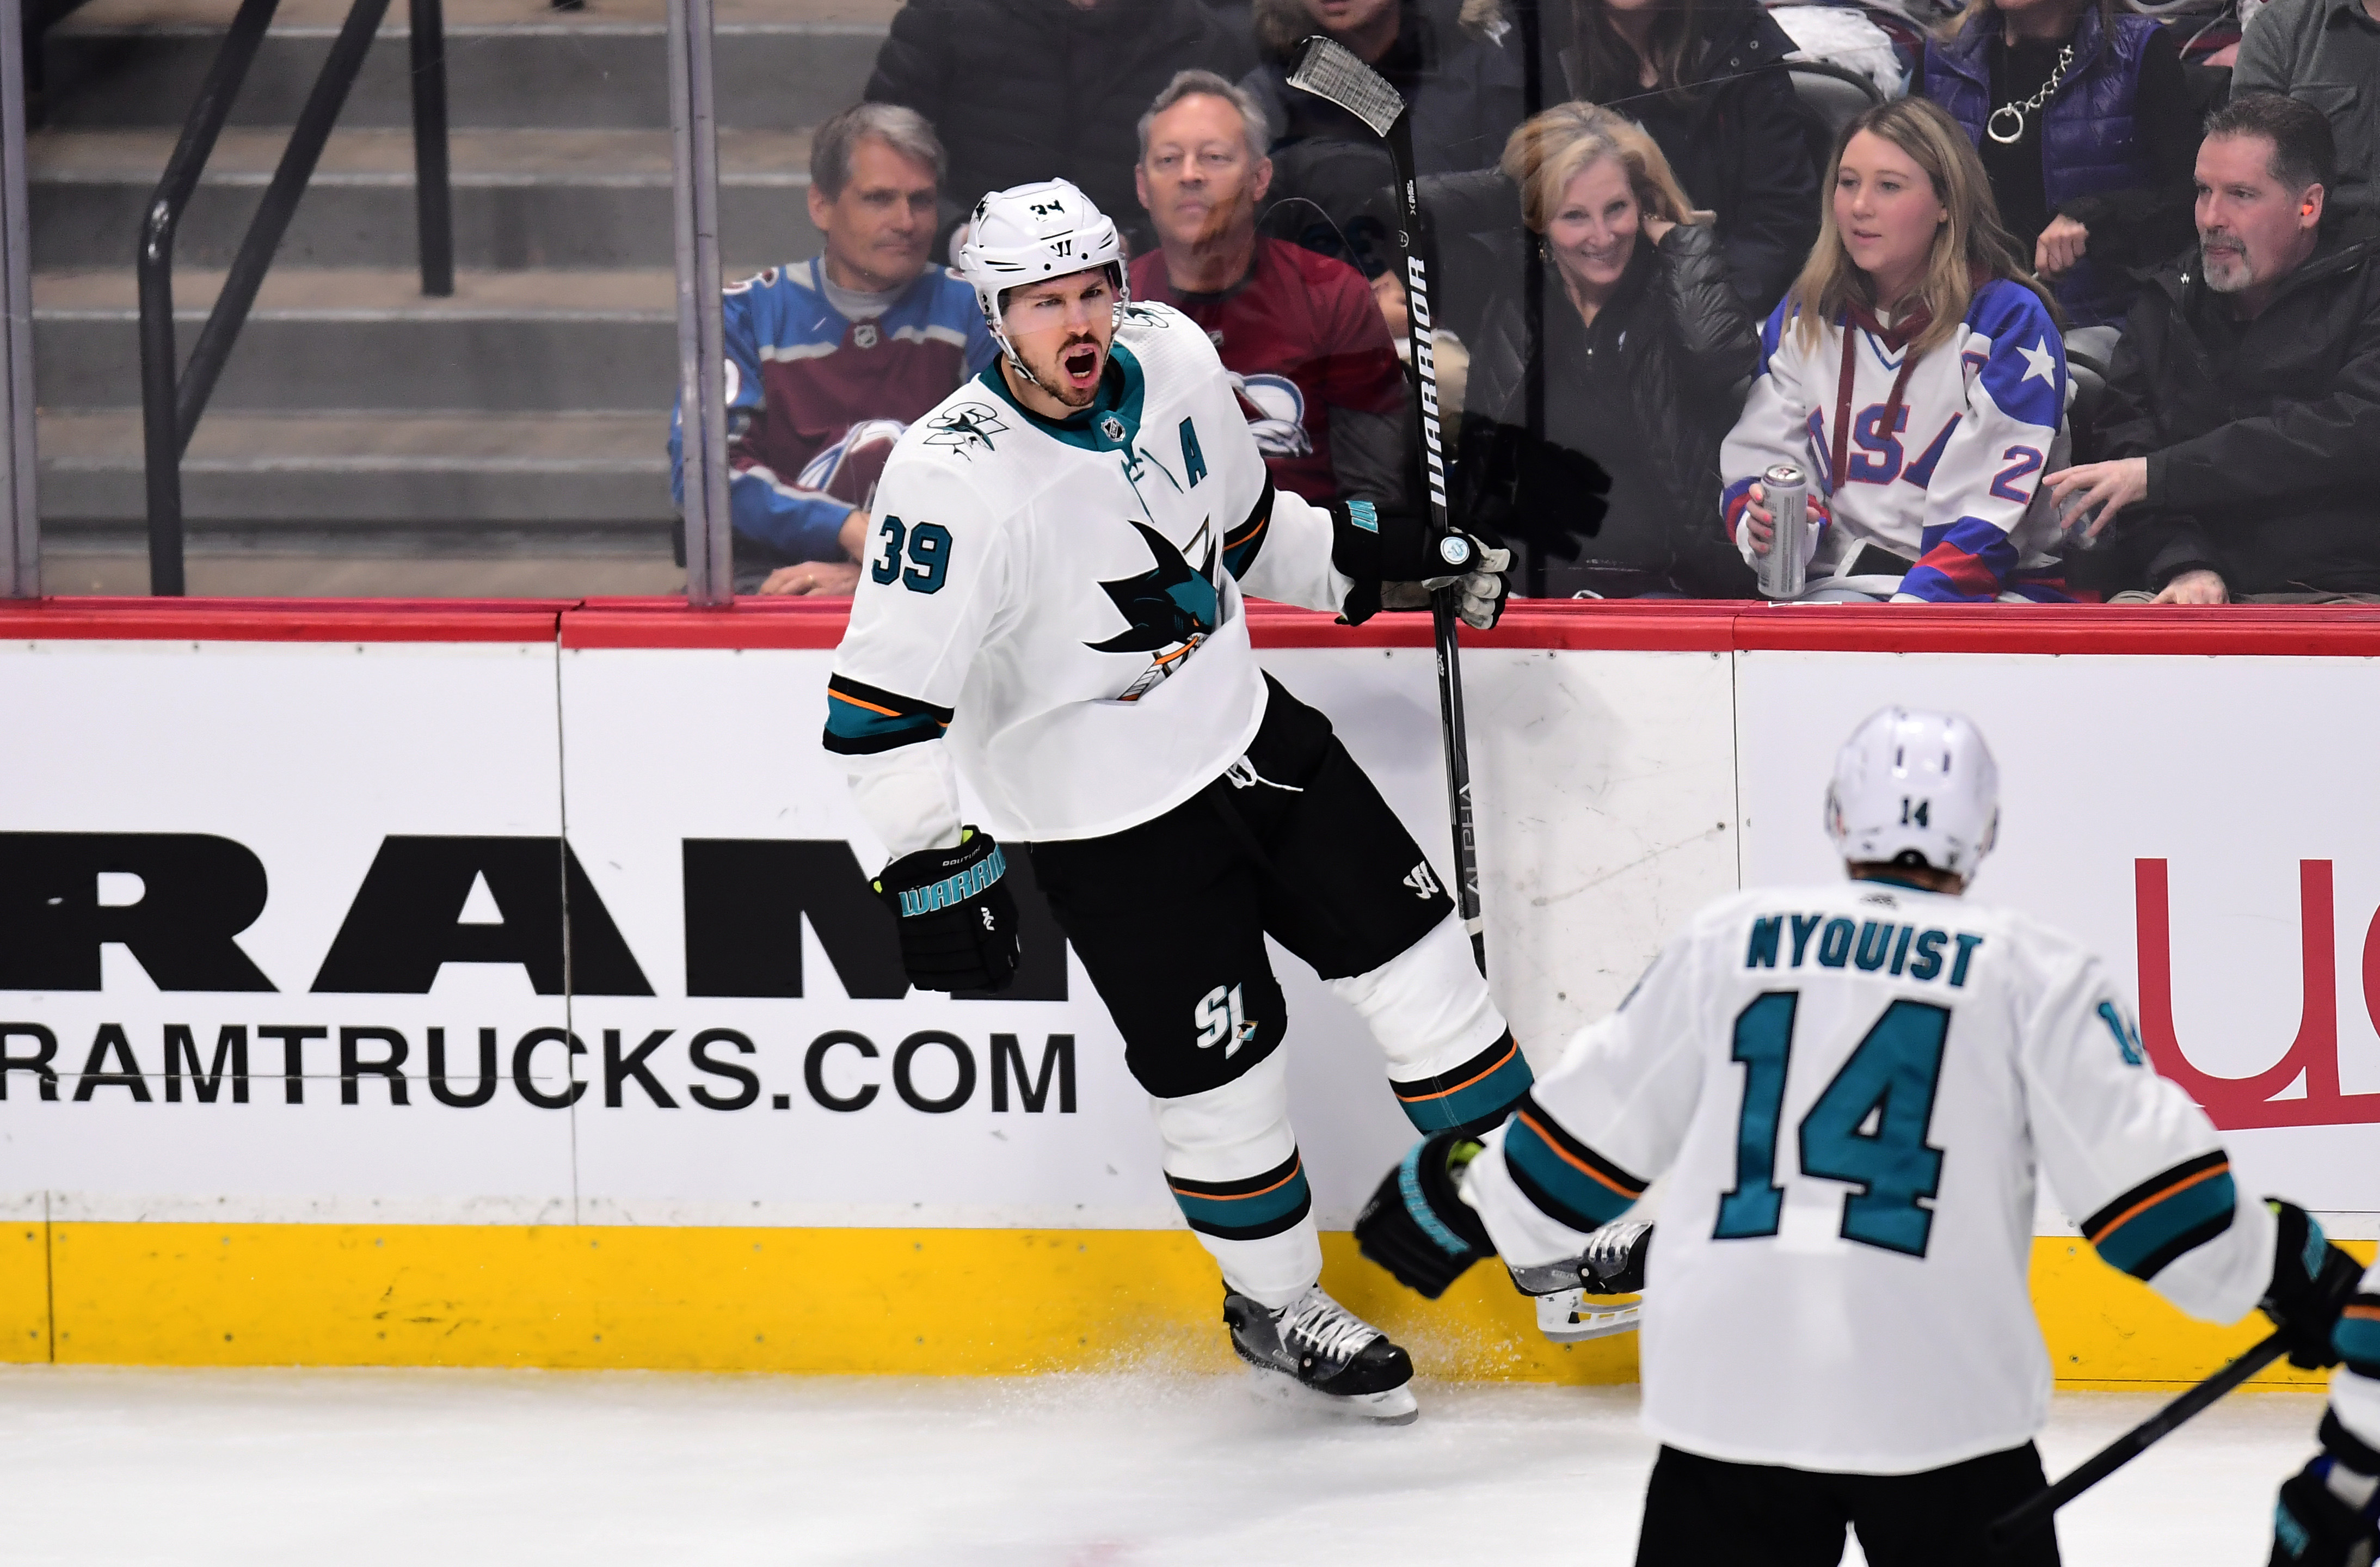 Apr 30, 2019; Denver, CO, USA;San Jose Sharks center Logan Couture (39) celebrates his goal in the first period against the Colorado Avalanche in game three of the second round of the 2019 Stanley Cup Playoffs at Pepsi Center. Mandatory Credit: Ron Chenoy